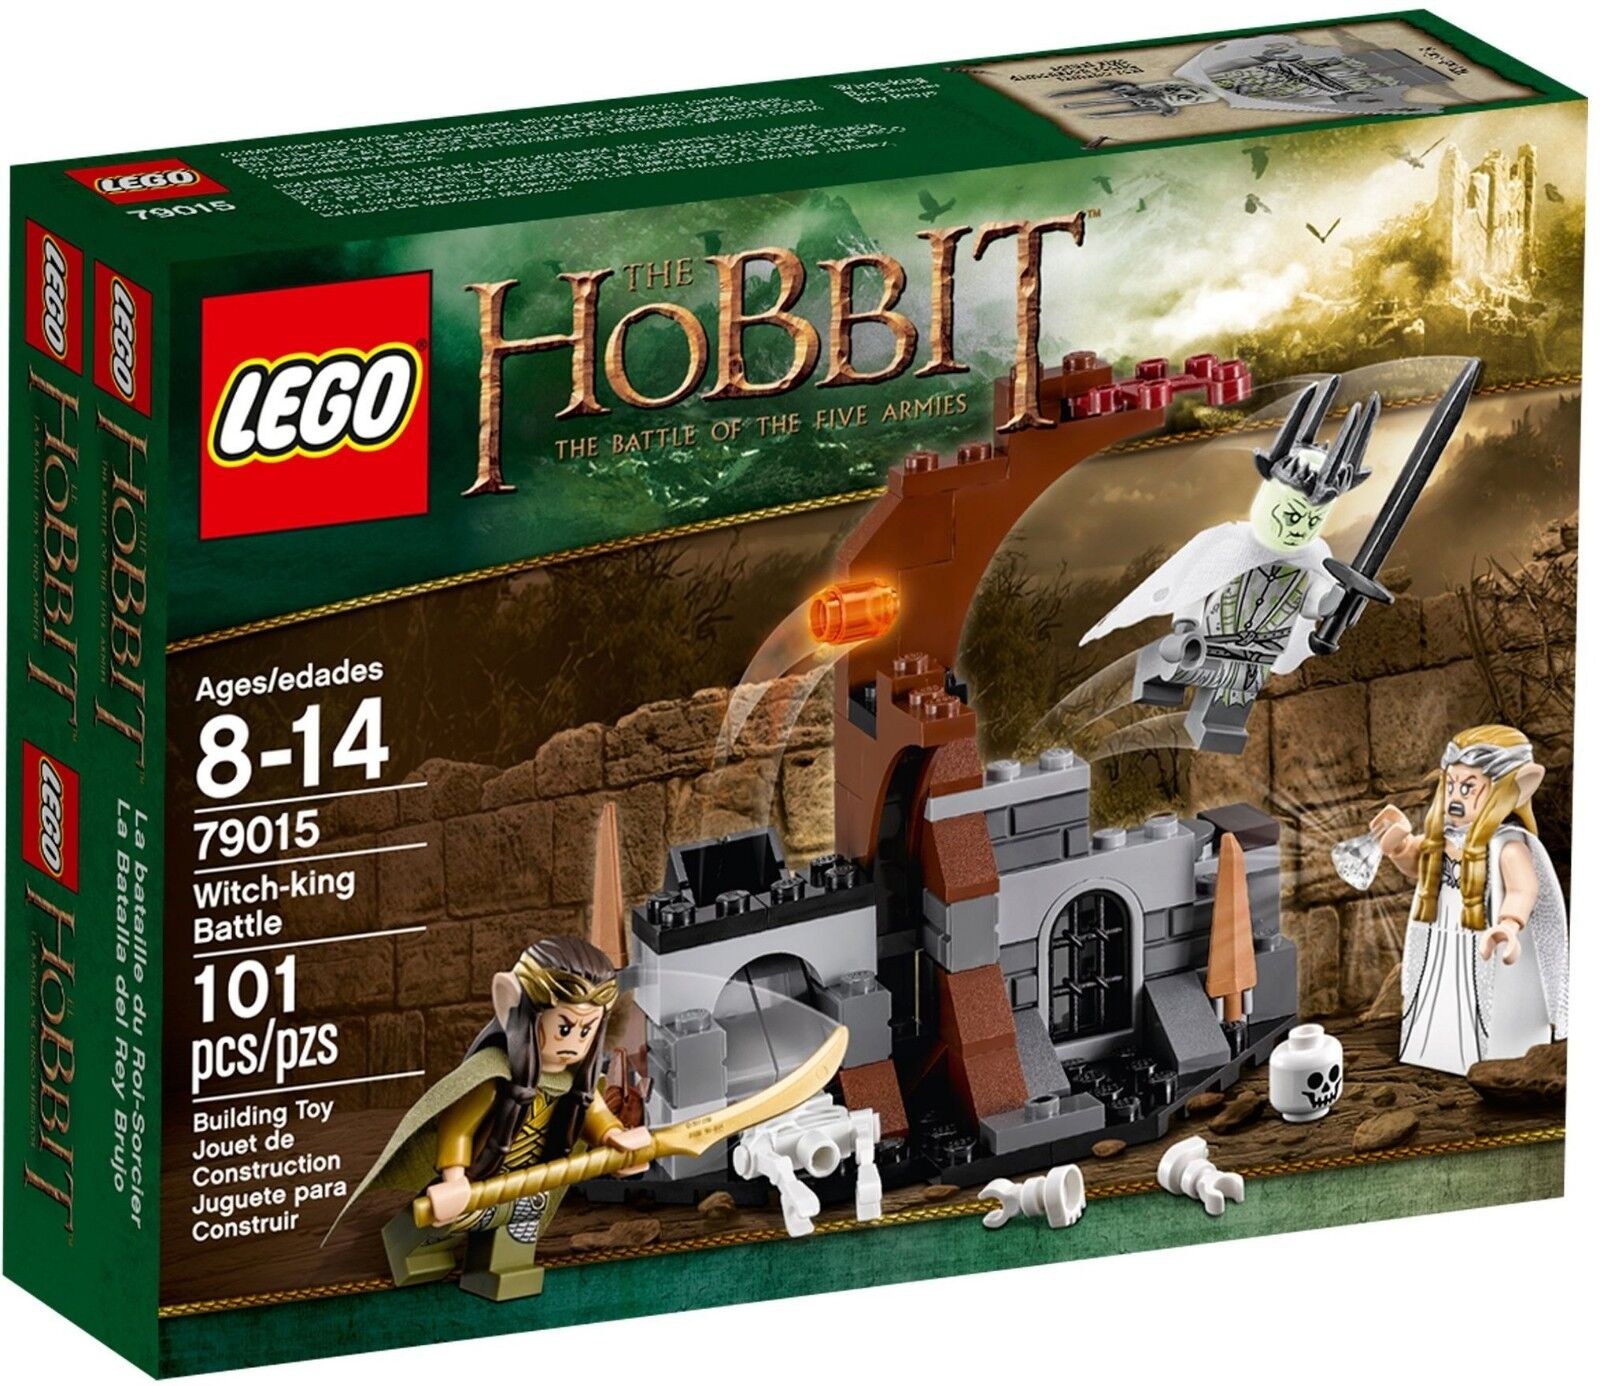 LEGO THE HOBBIT   79015 Witch-King Battle   RARE✔ BNIB✔ NEW✔ SEALED✔ FAST P&P✔